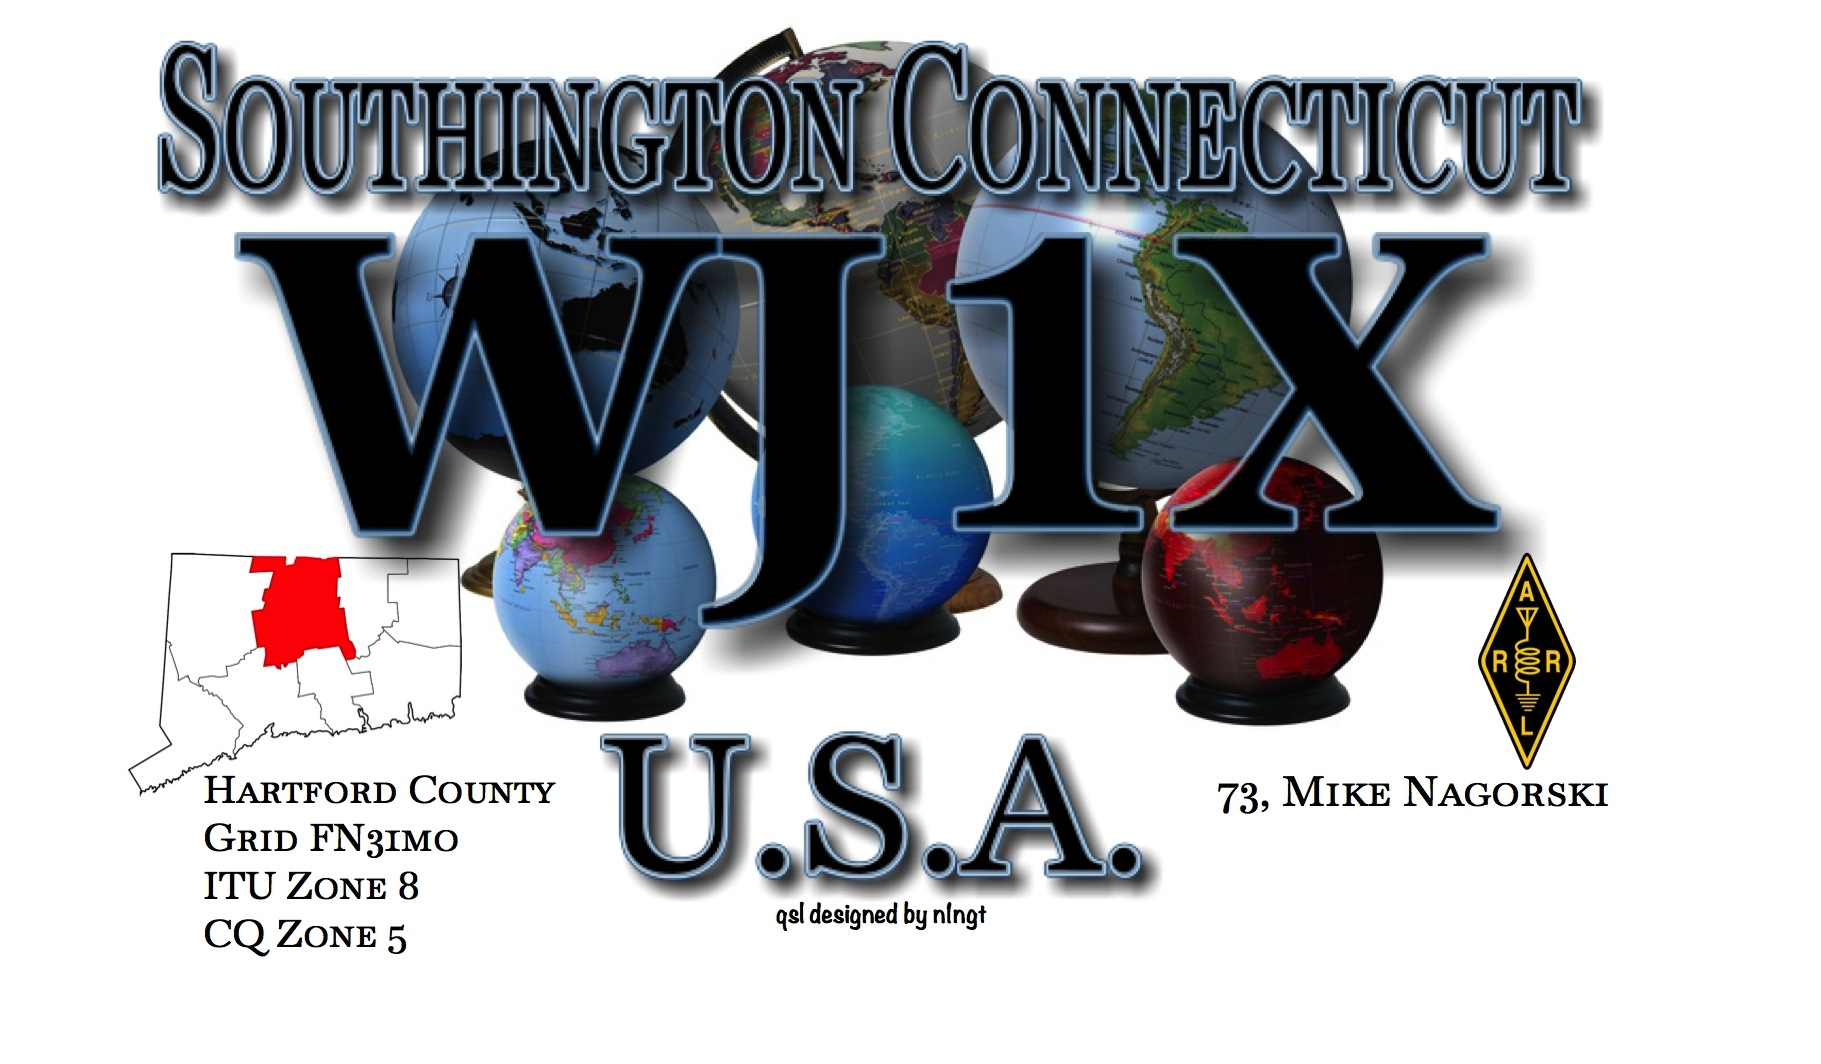 QSL image for WJ1X